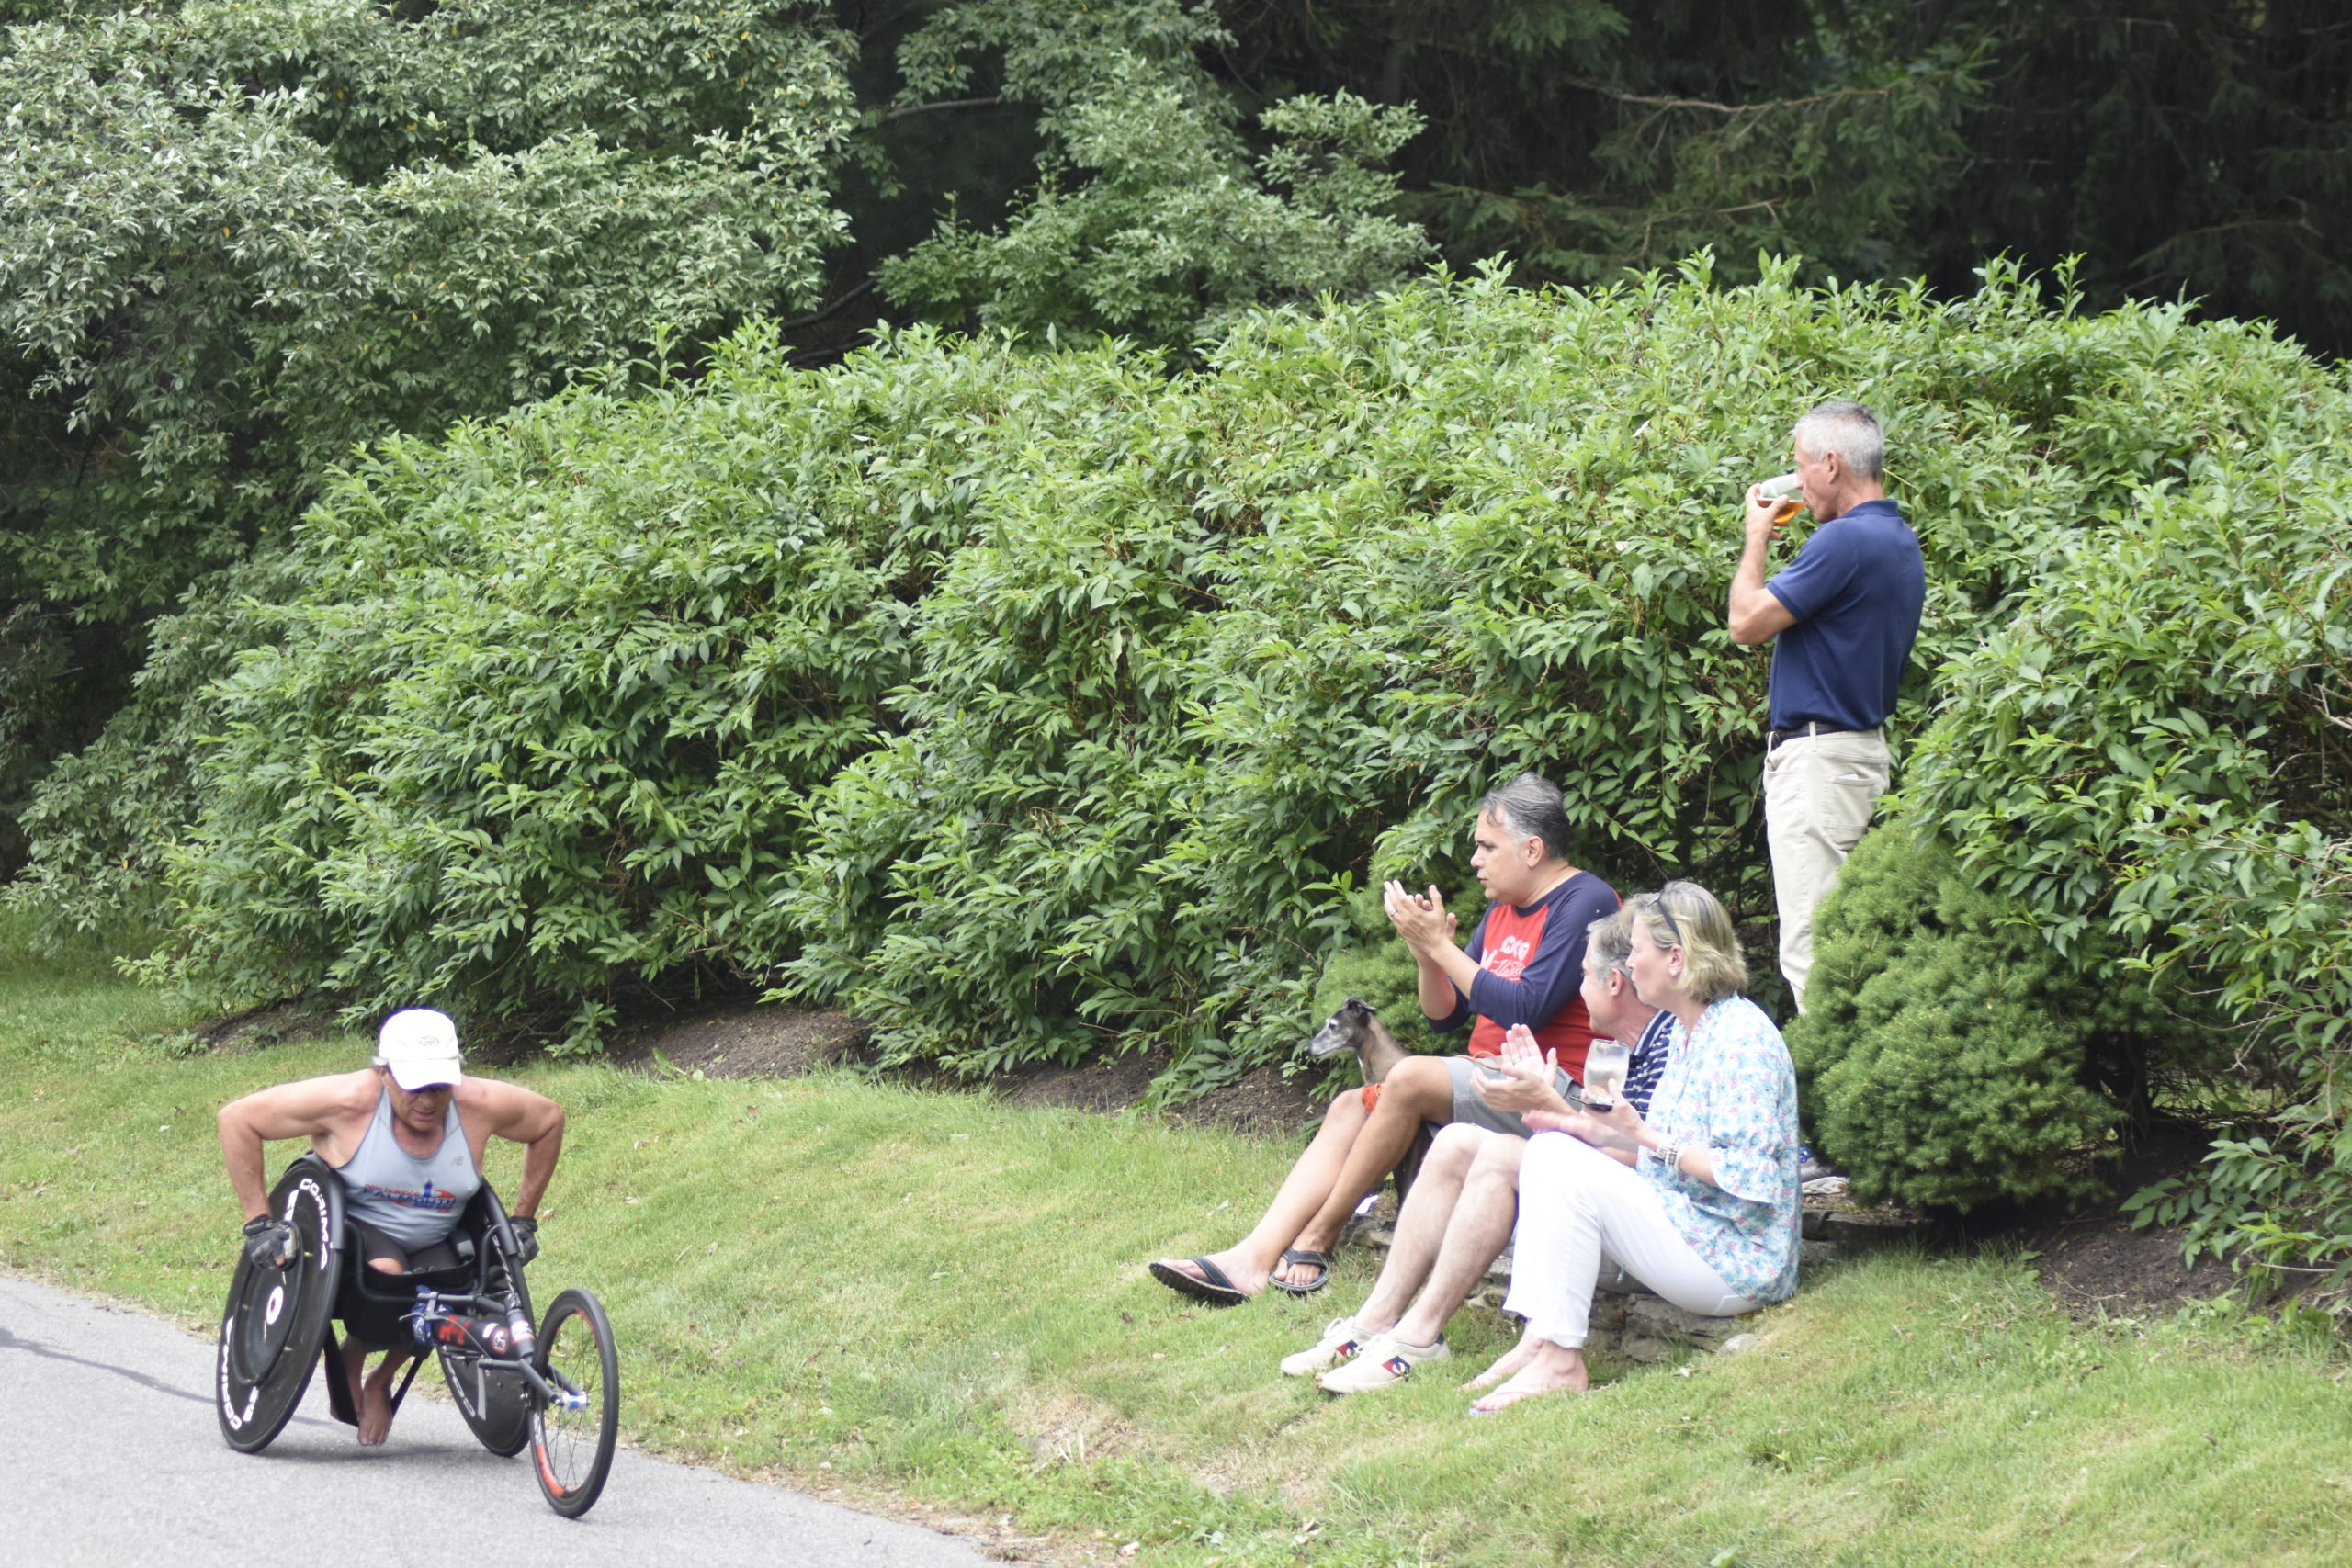 Spectators cheer on William Lehr as he passes by.